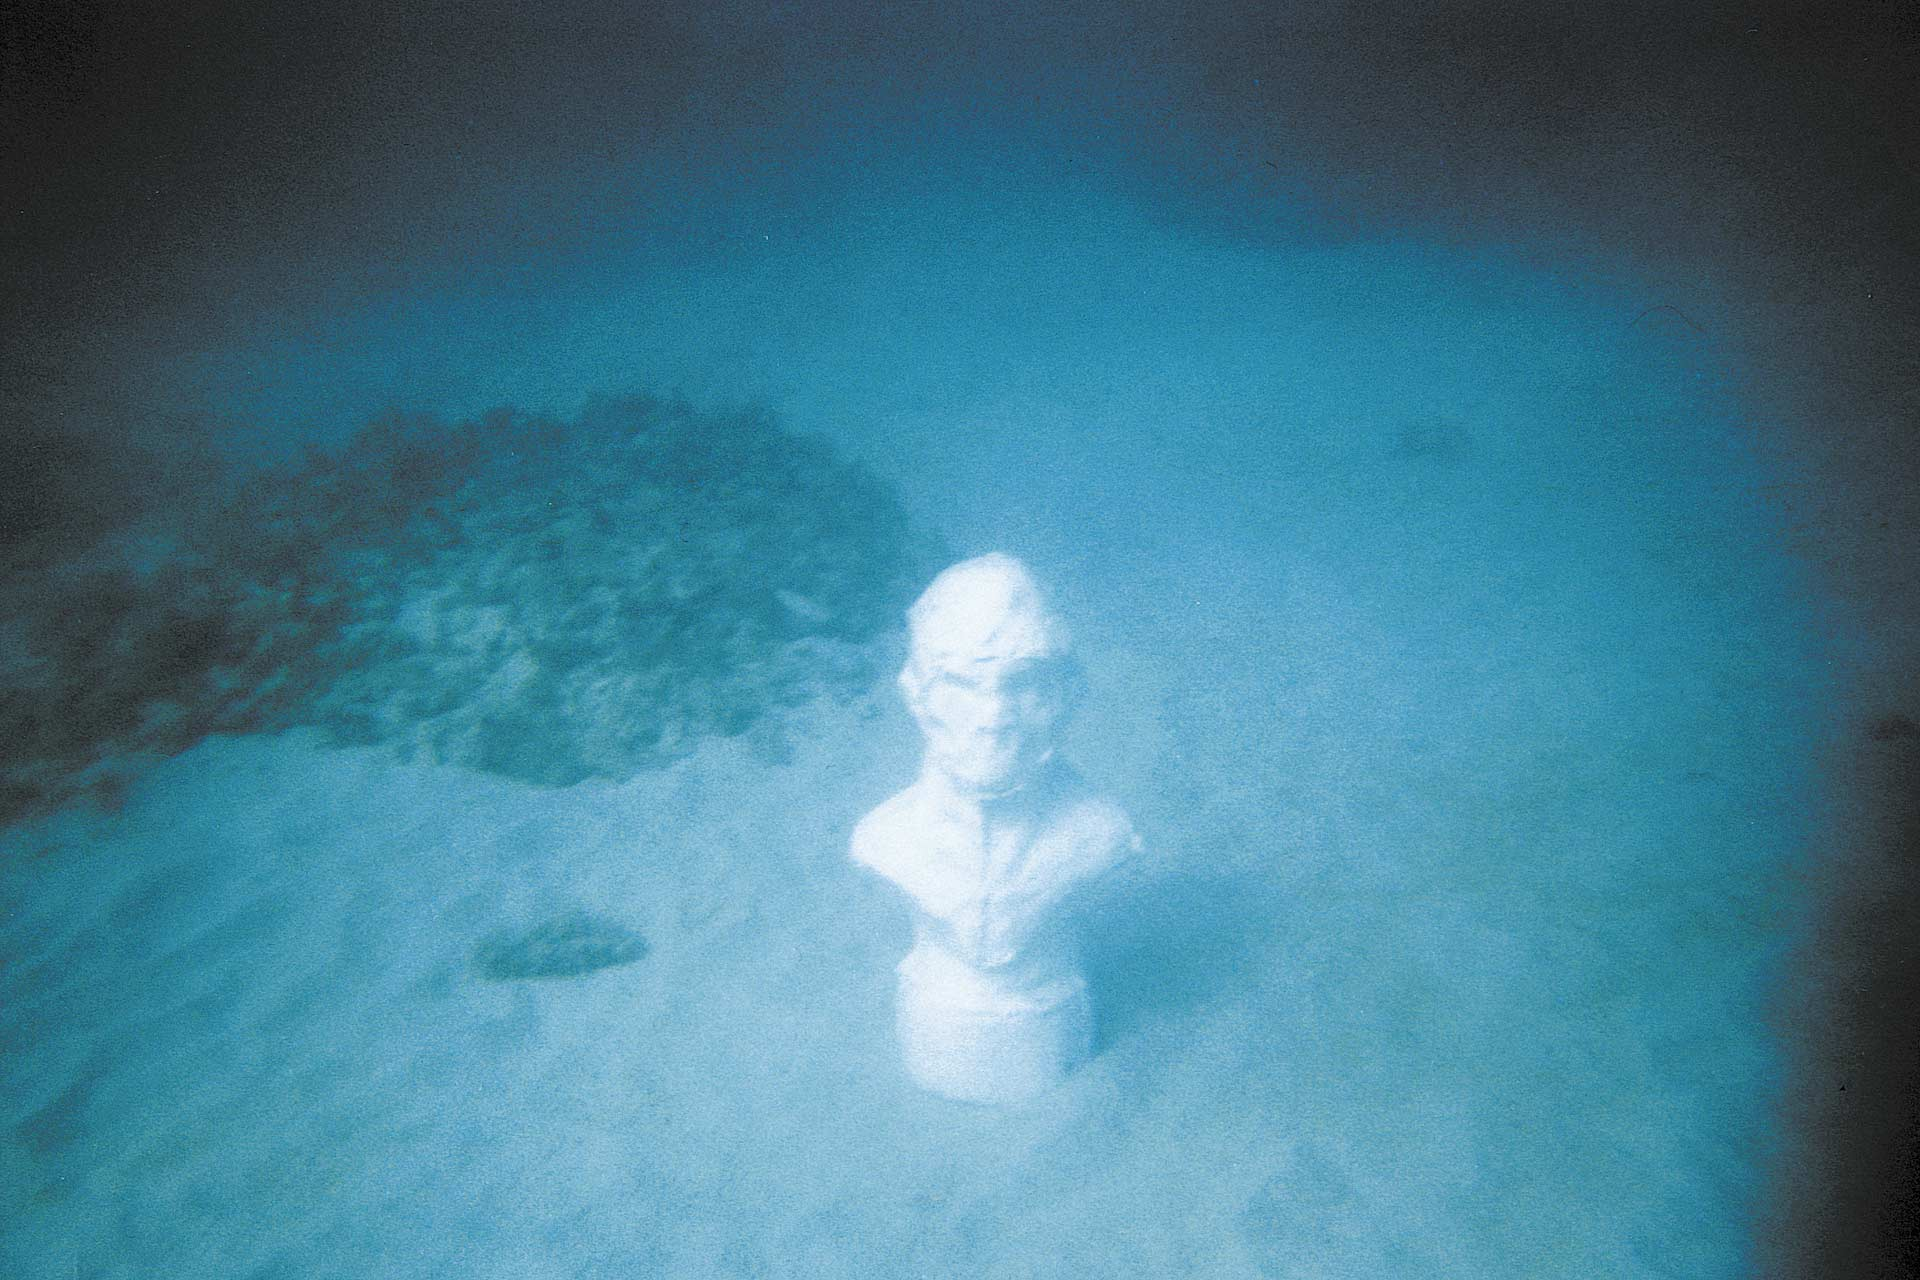 Envinronmental Wanderer (Guanabo, Cuba) 2001, ongoing Project involving 5 plaster casts left in different locations around the world. C-type Print on aluminium, 100x70 cm.